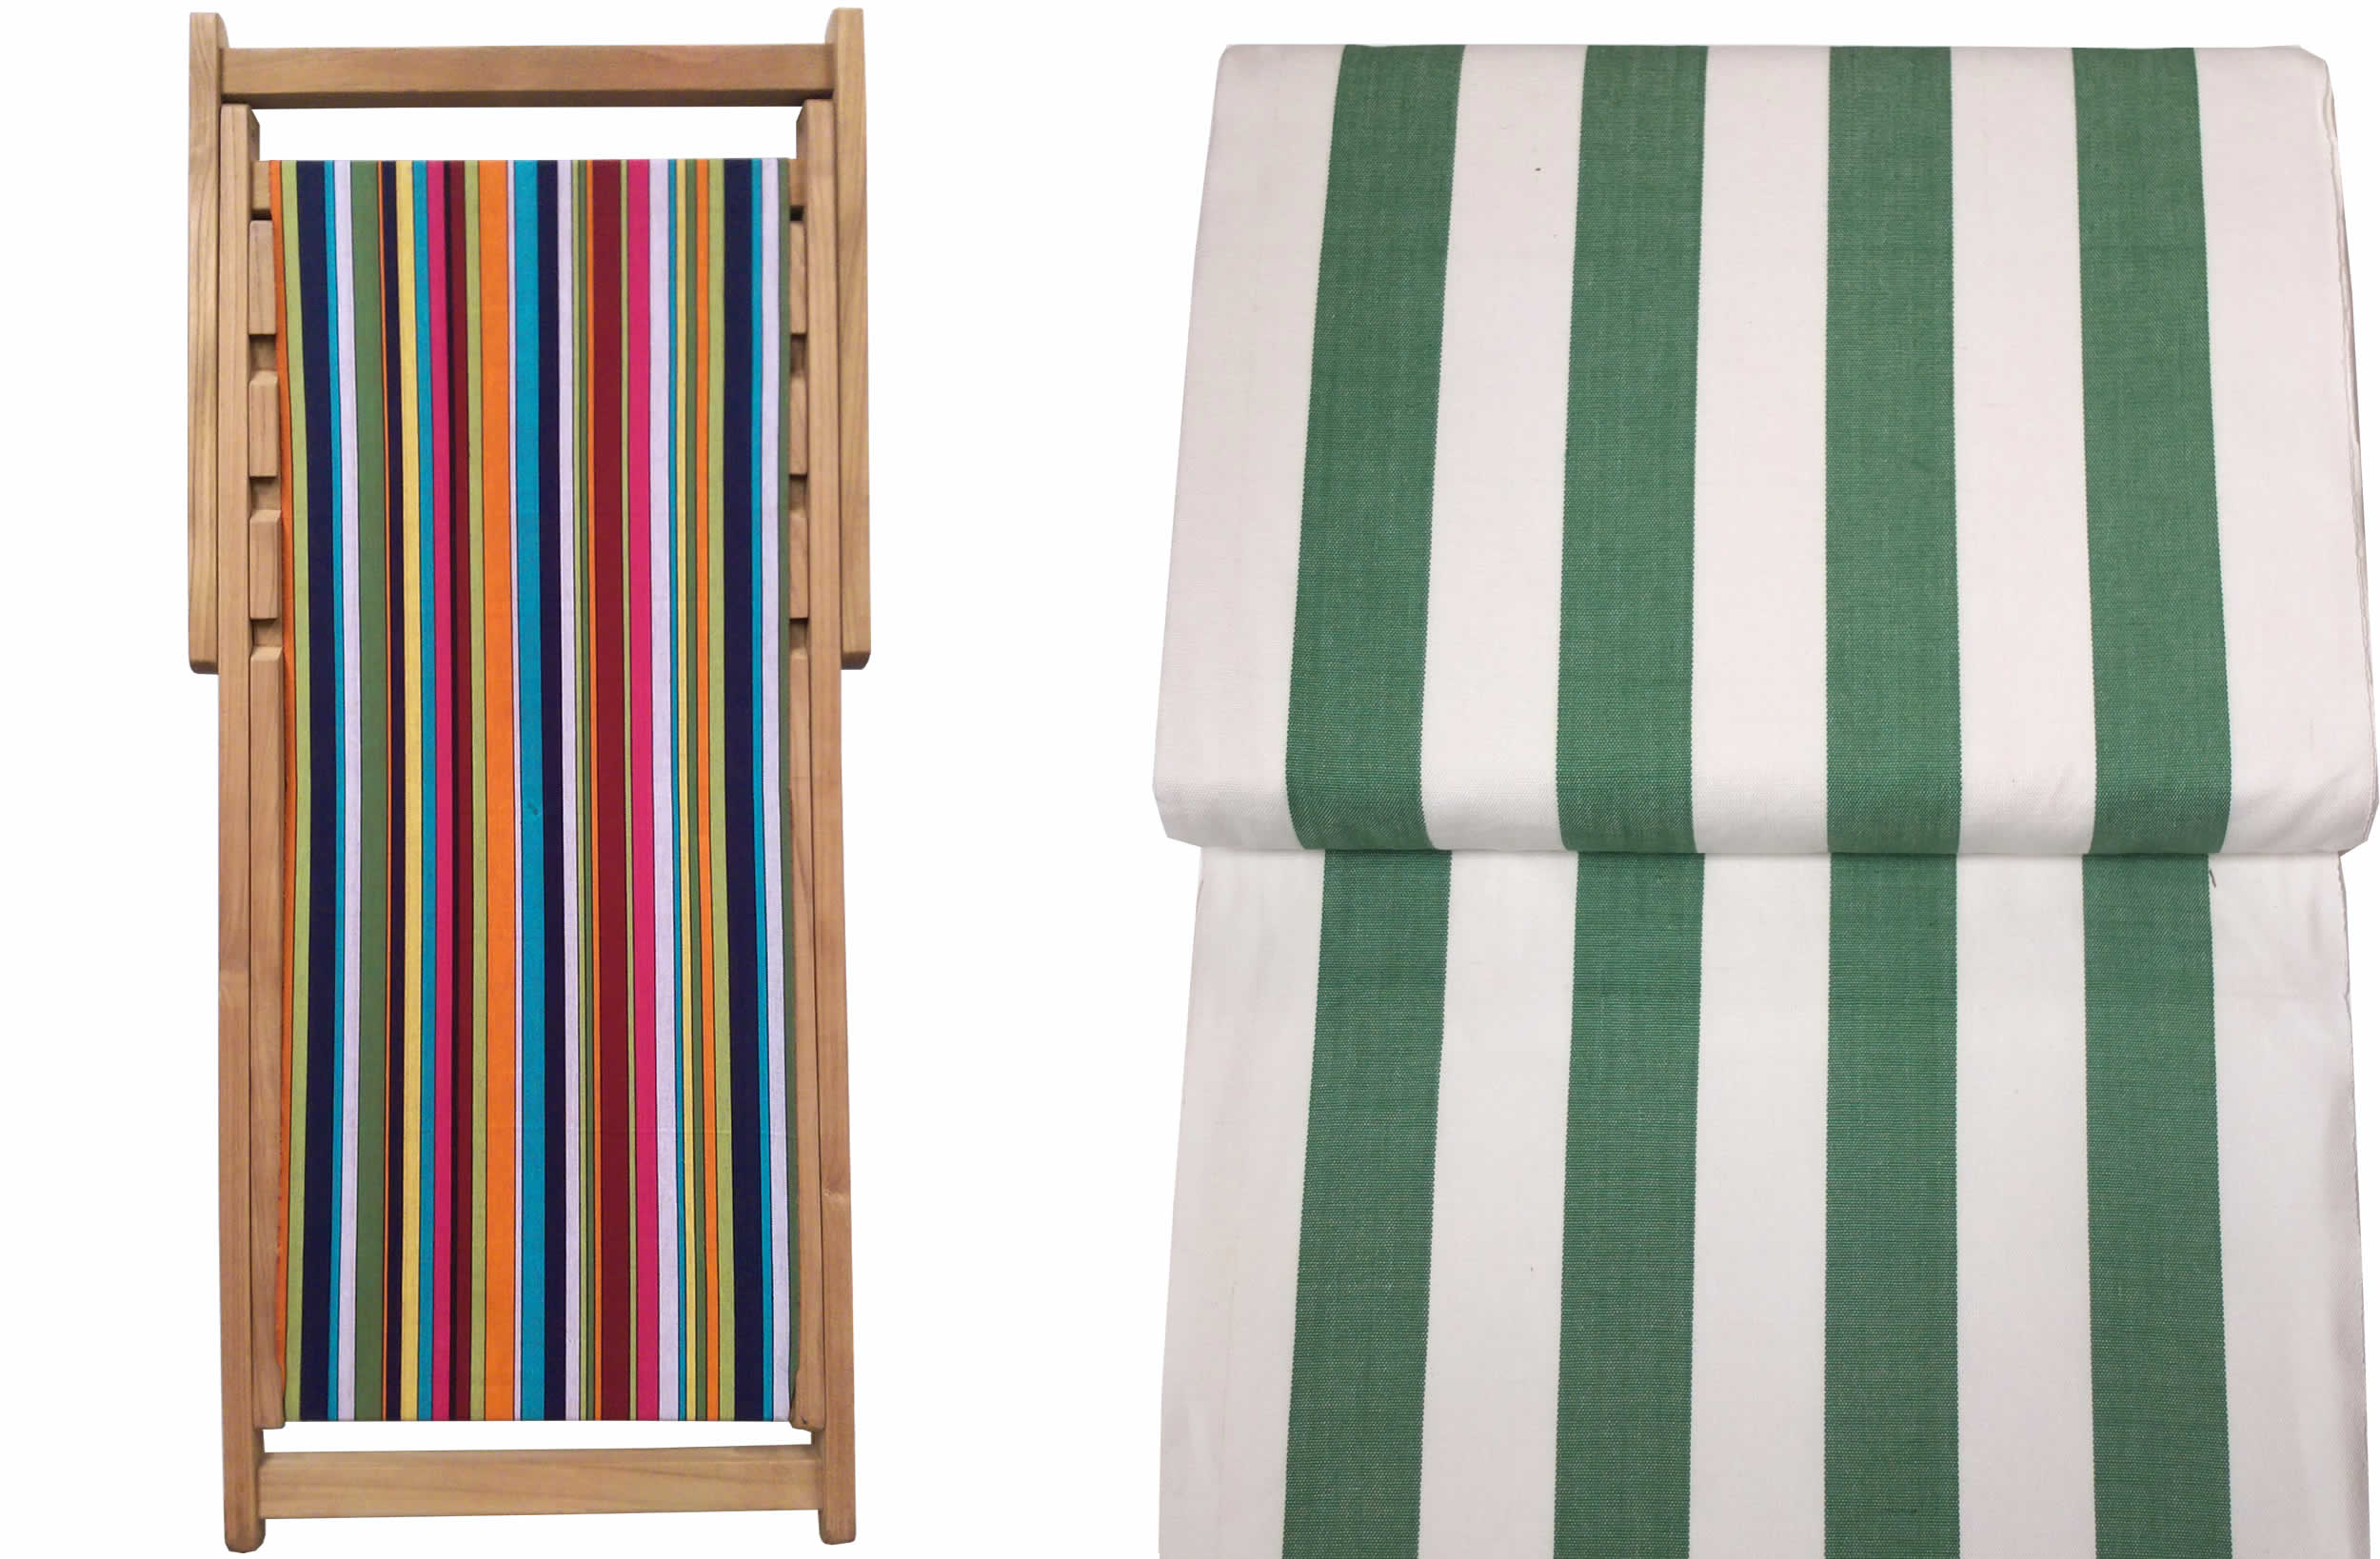 Teak Deck Chairs green and white stripes